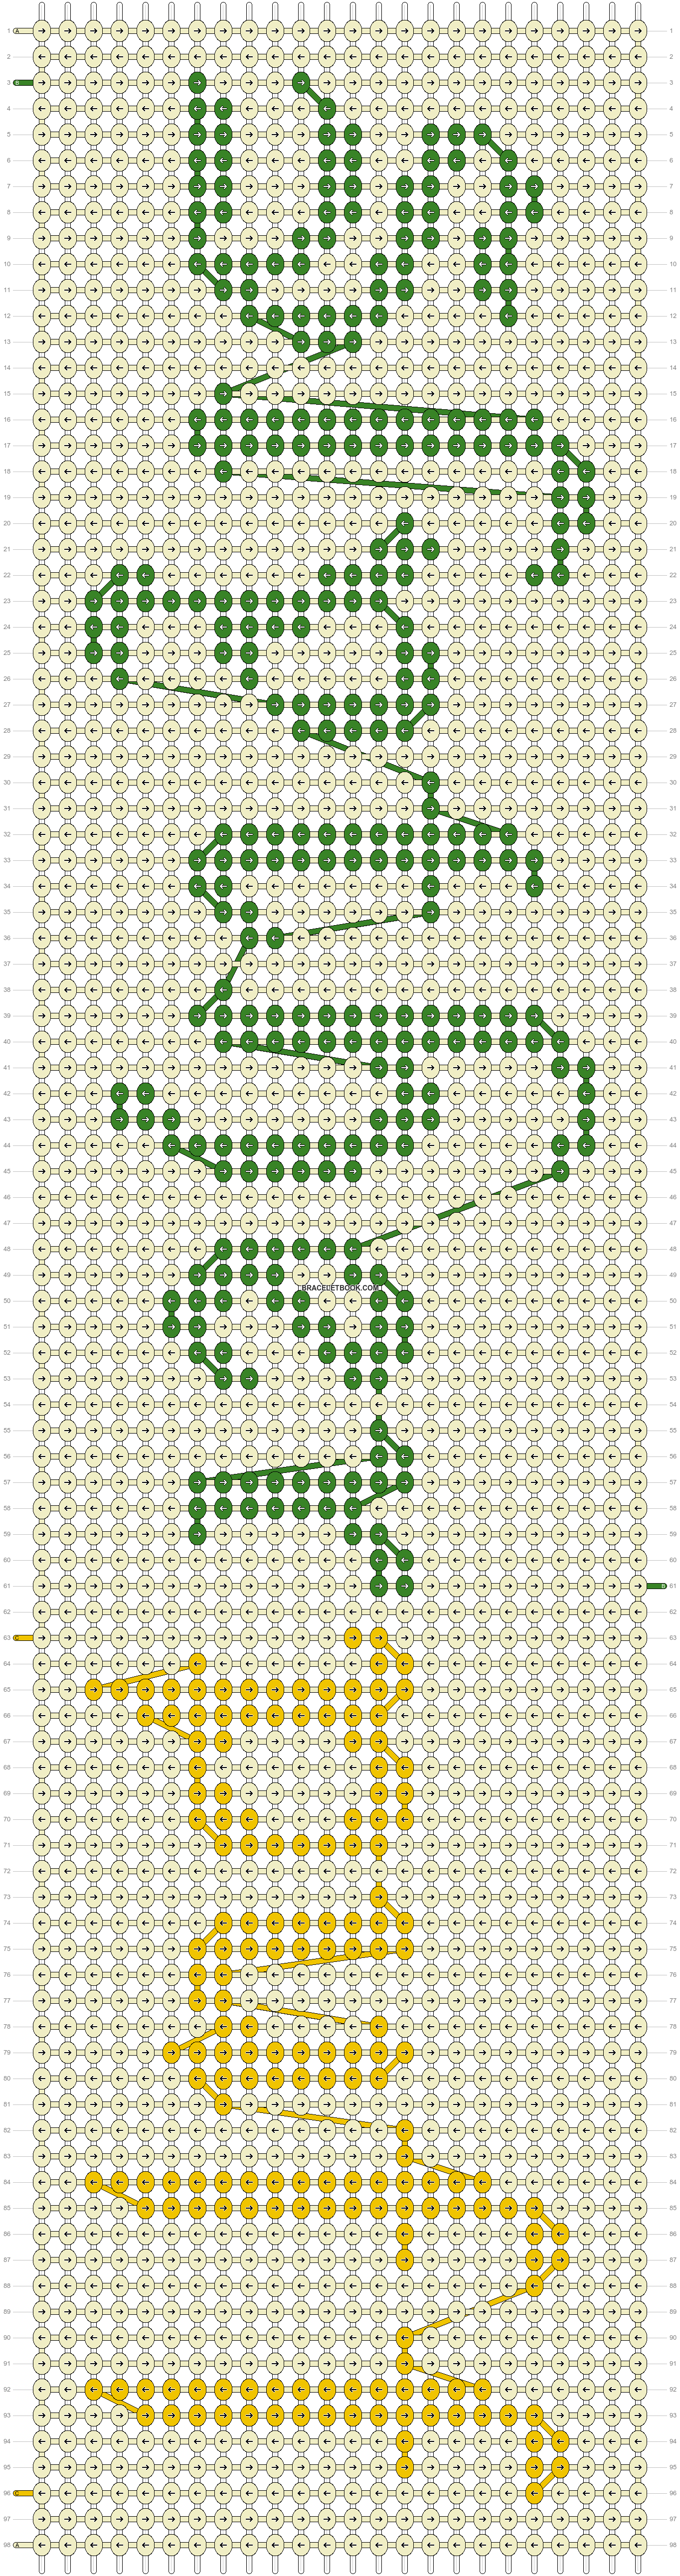 Alpha Pattern #10612 added by DragonFly1